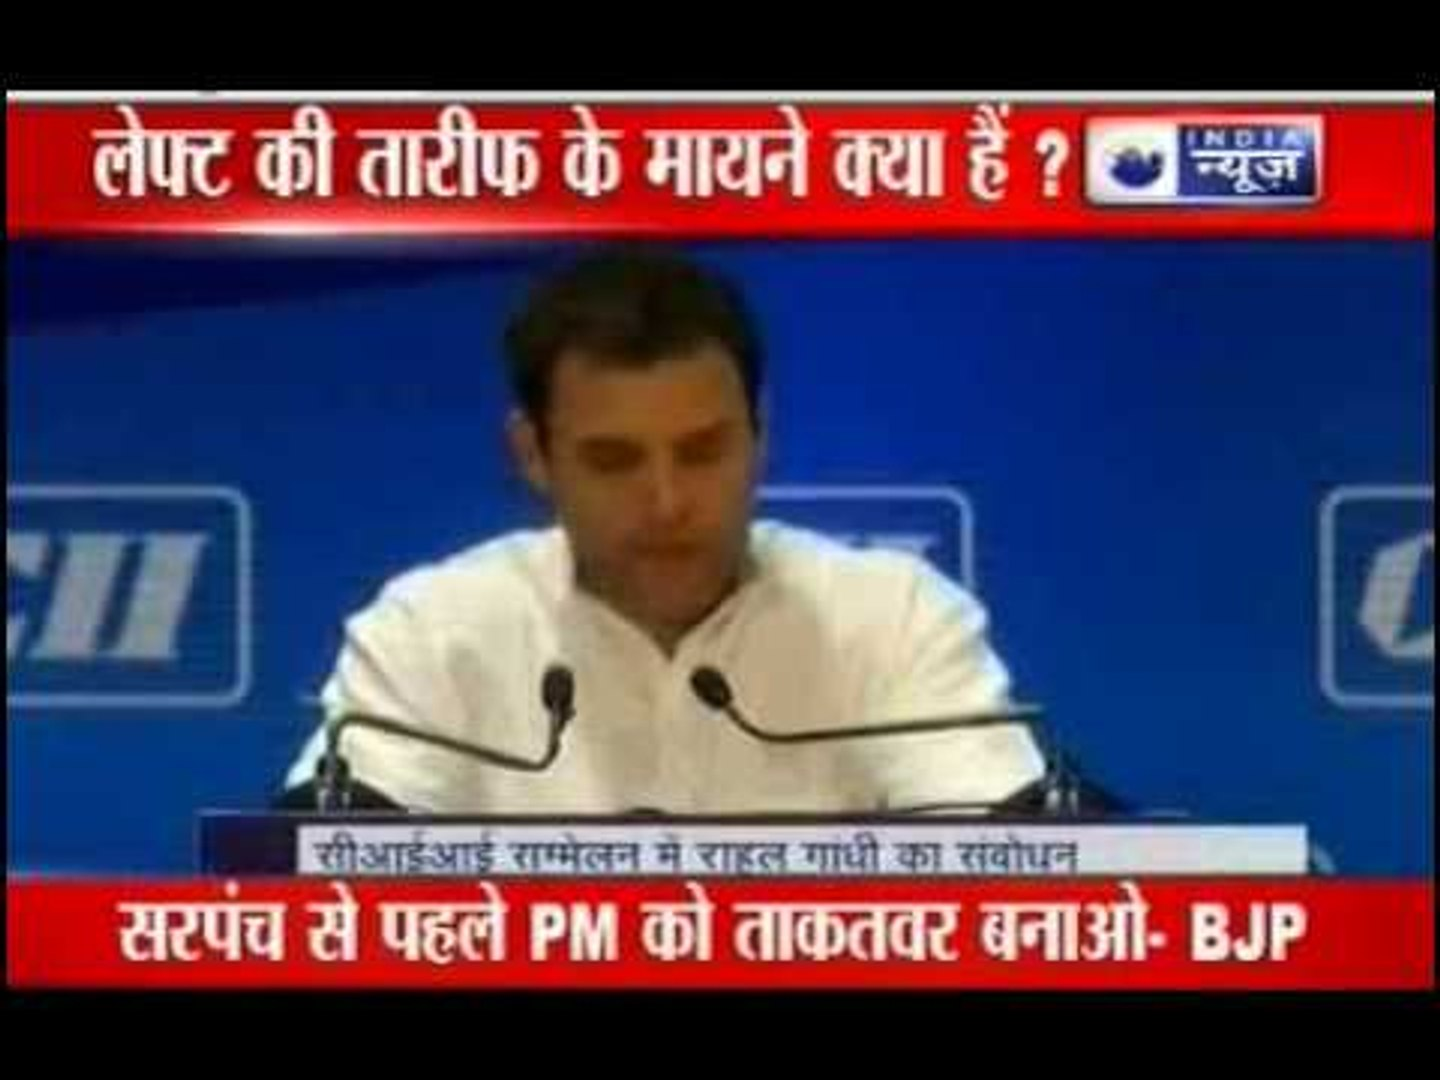 Latest India News: Top News of the hour